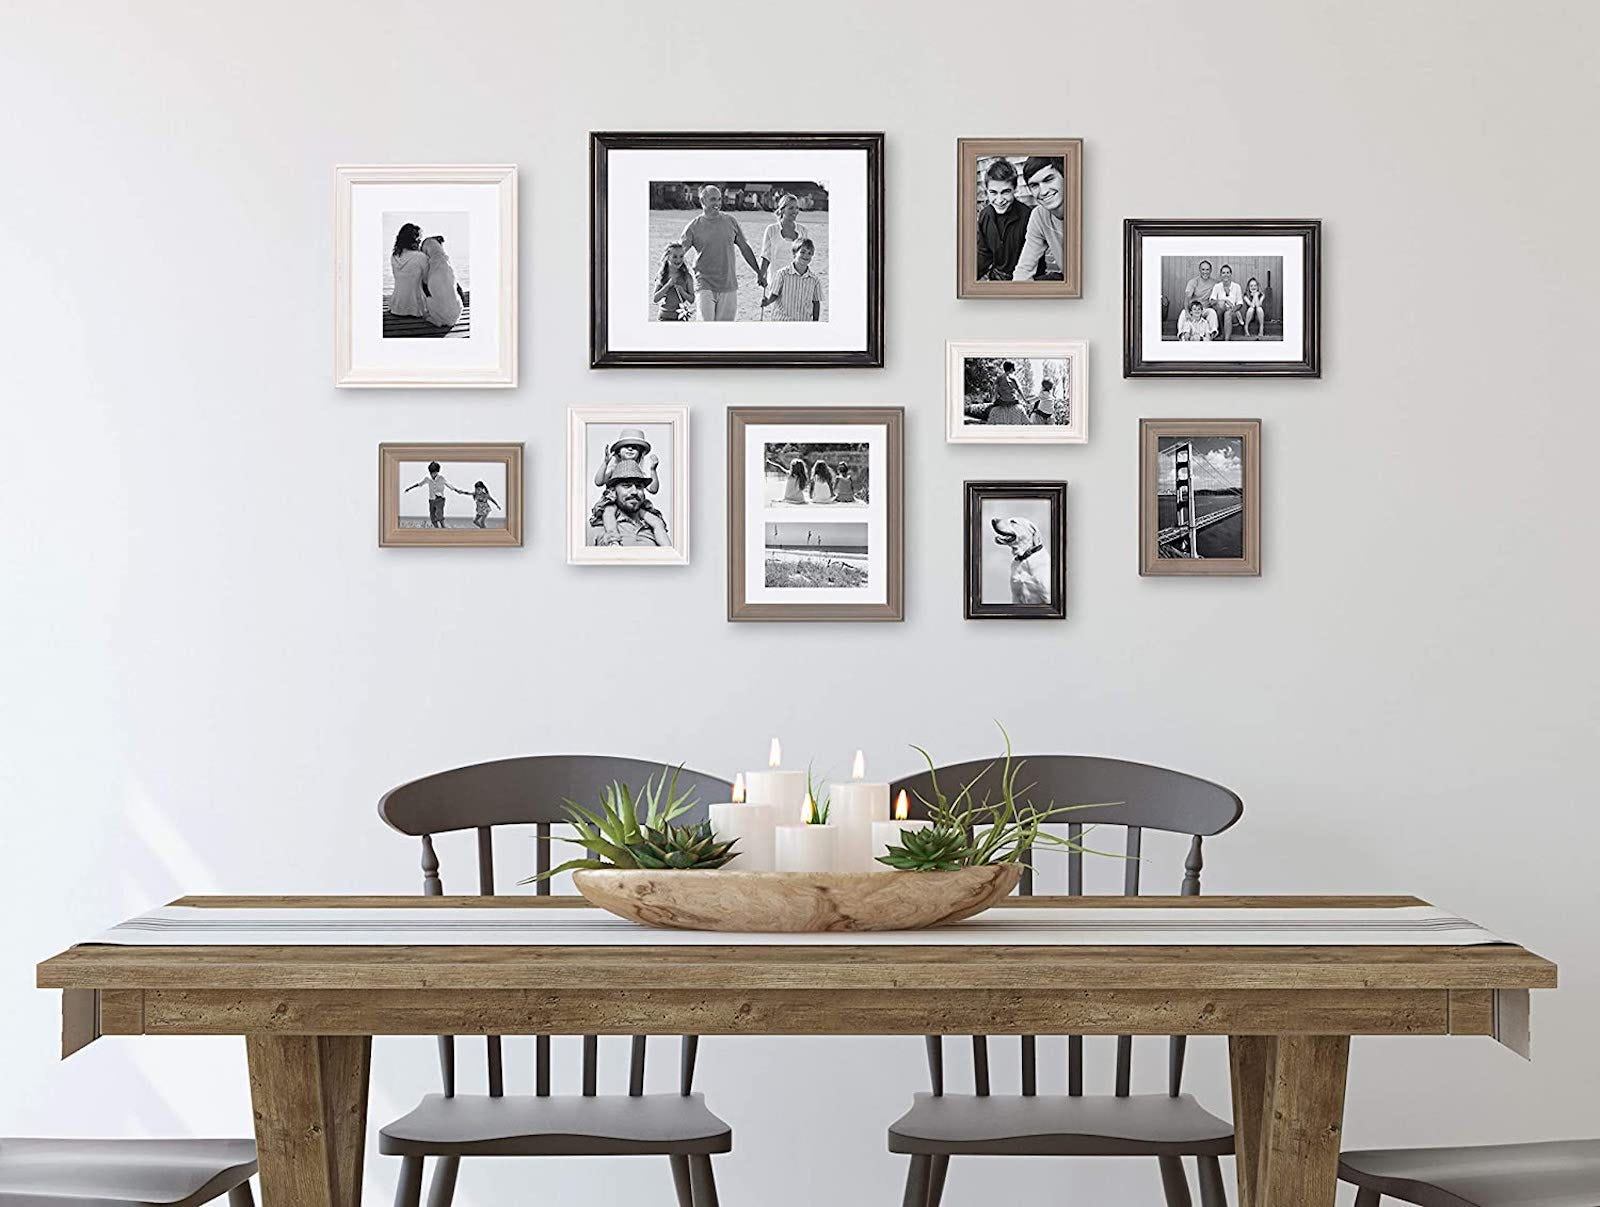 White wall in a dining room with several black-and-white photos in neutral-colored frames